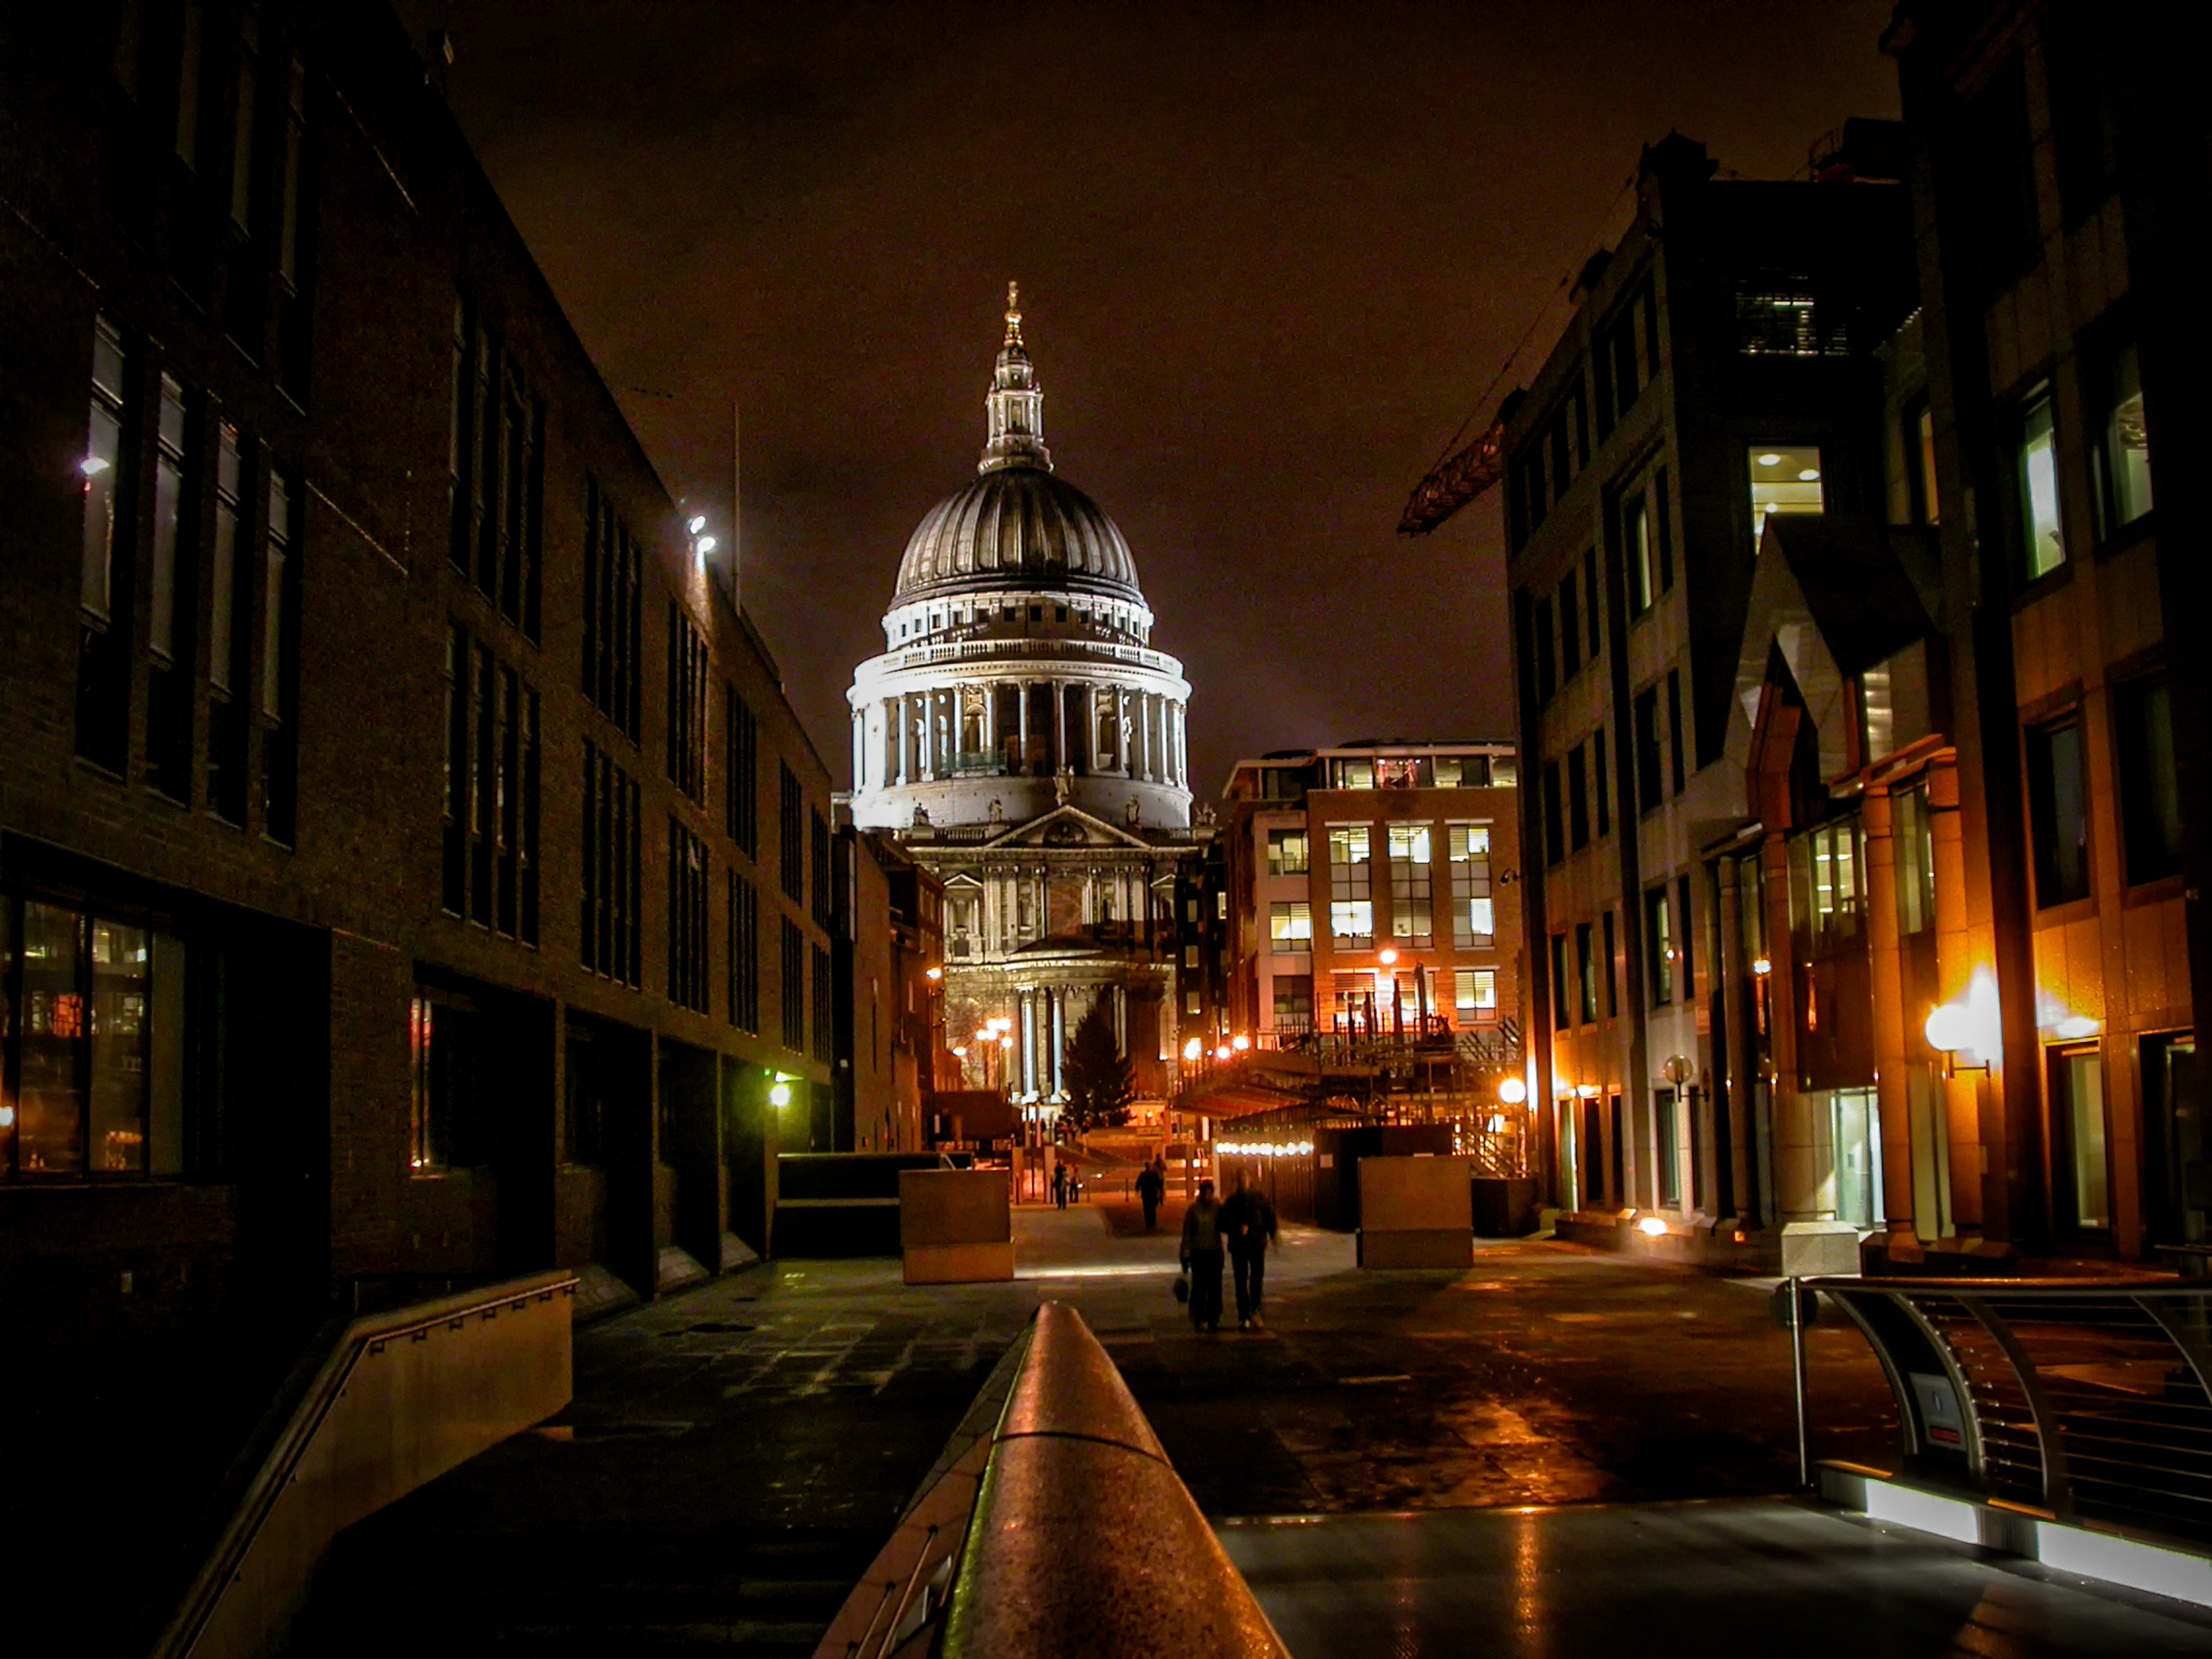 st paul s at night author bloy bruce london n